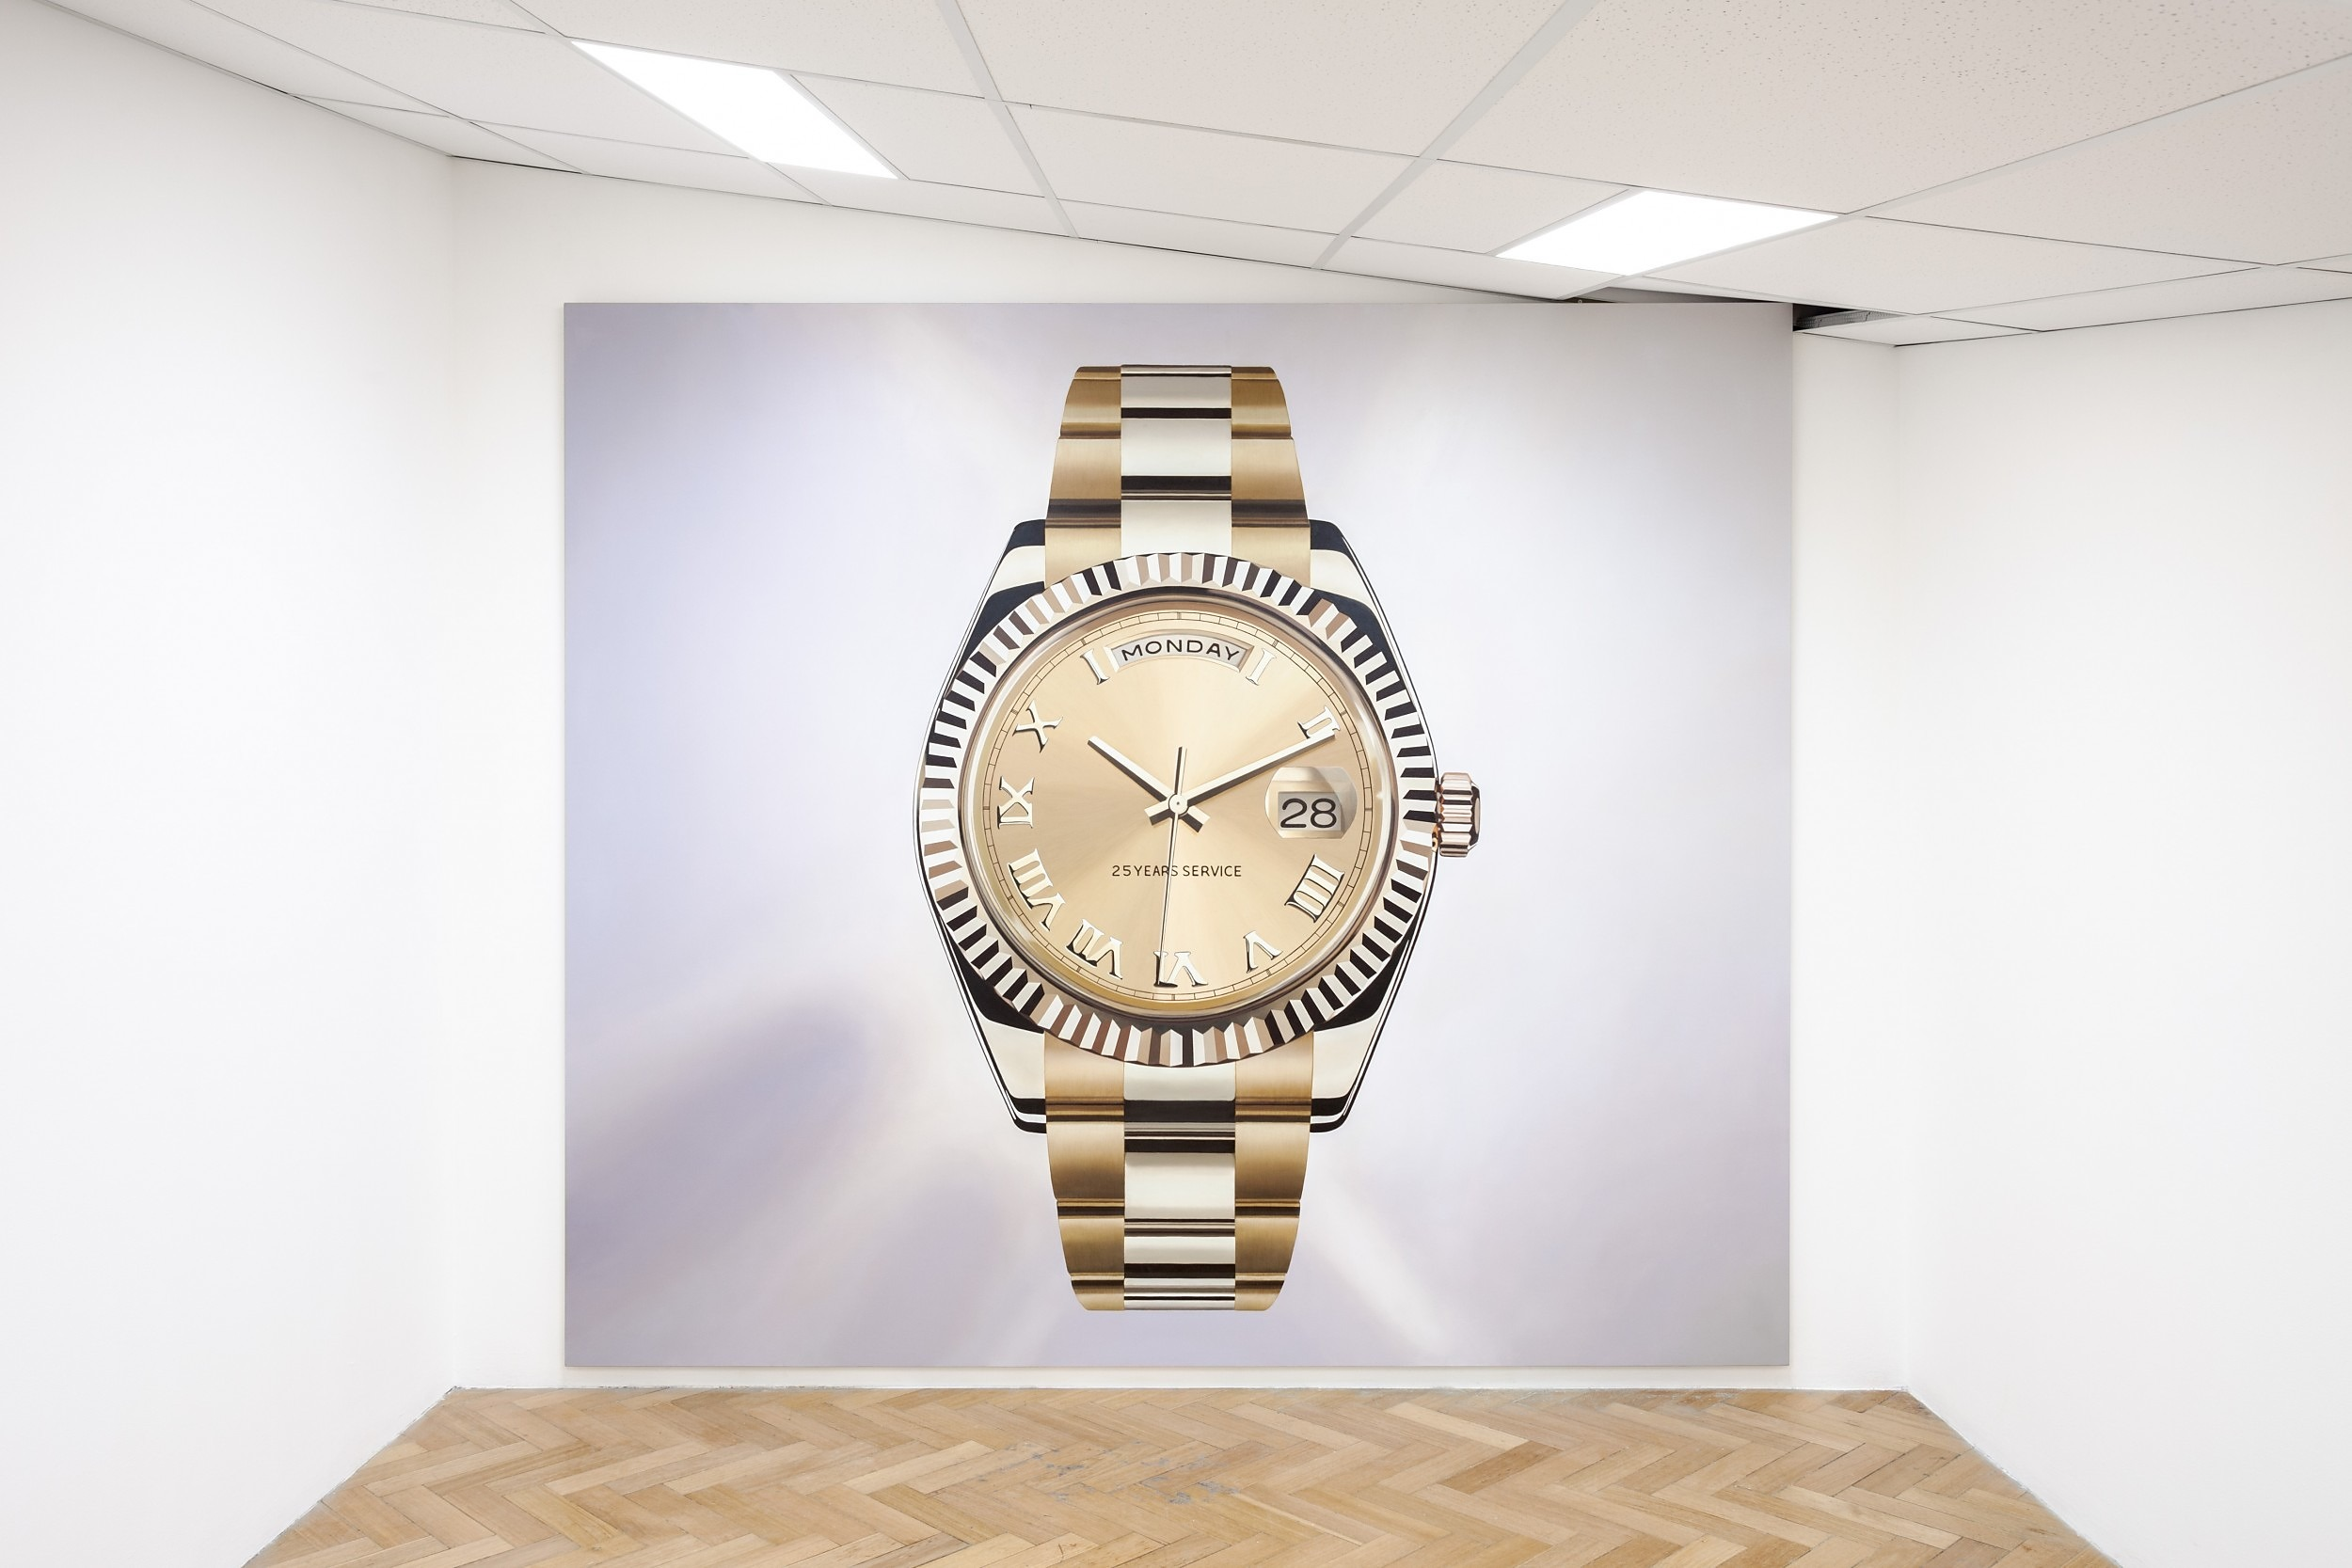 Gold Watch (for Steve), 2014. Oil on canvas, 2.6 x 3.0 m Installation view, Having Cheese Makes You Happy, West Space, Melbourne, VIC, Australia, Jun-Jul 2014